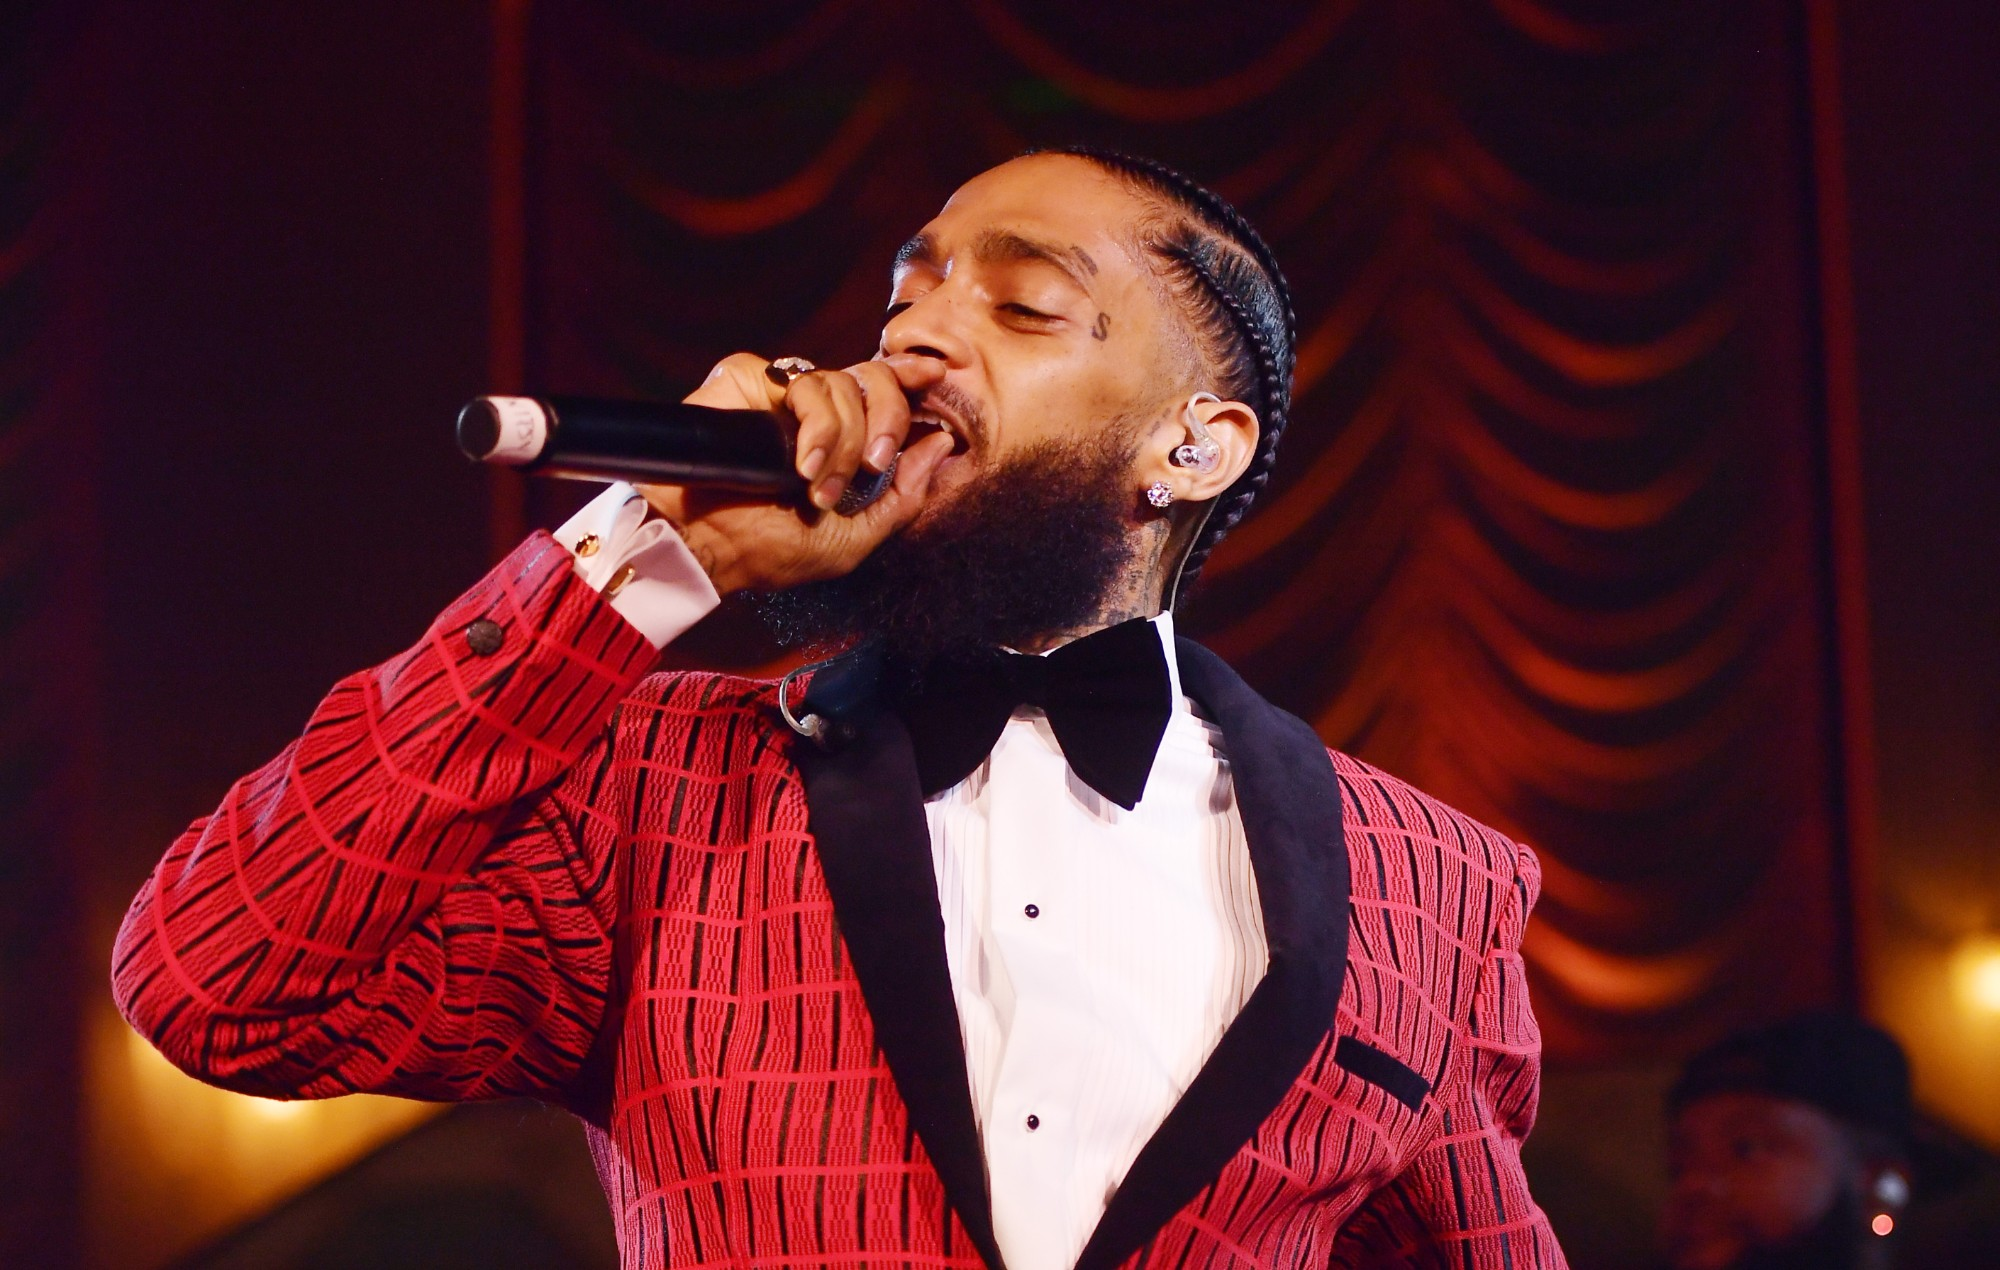 Nipsey Hussle had two more albums planned out before his passing